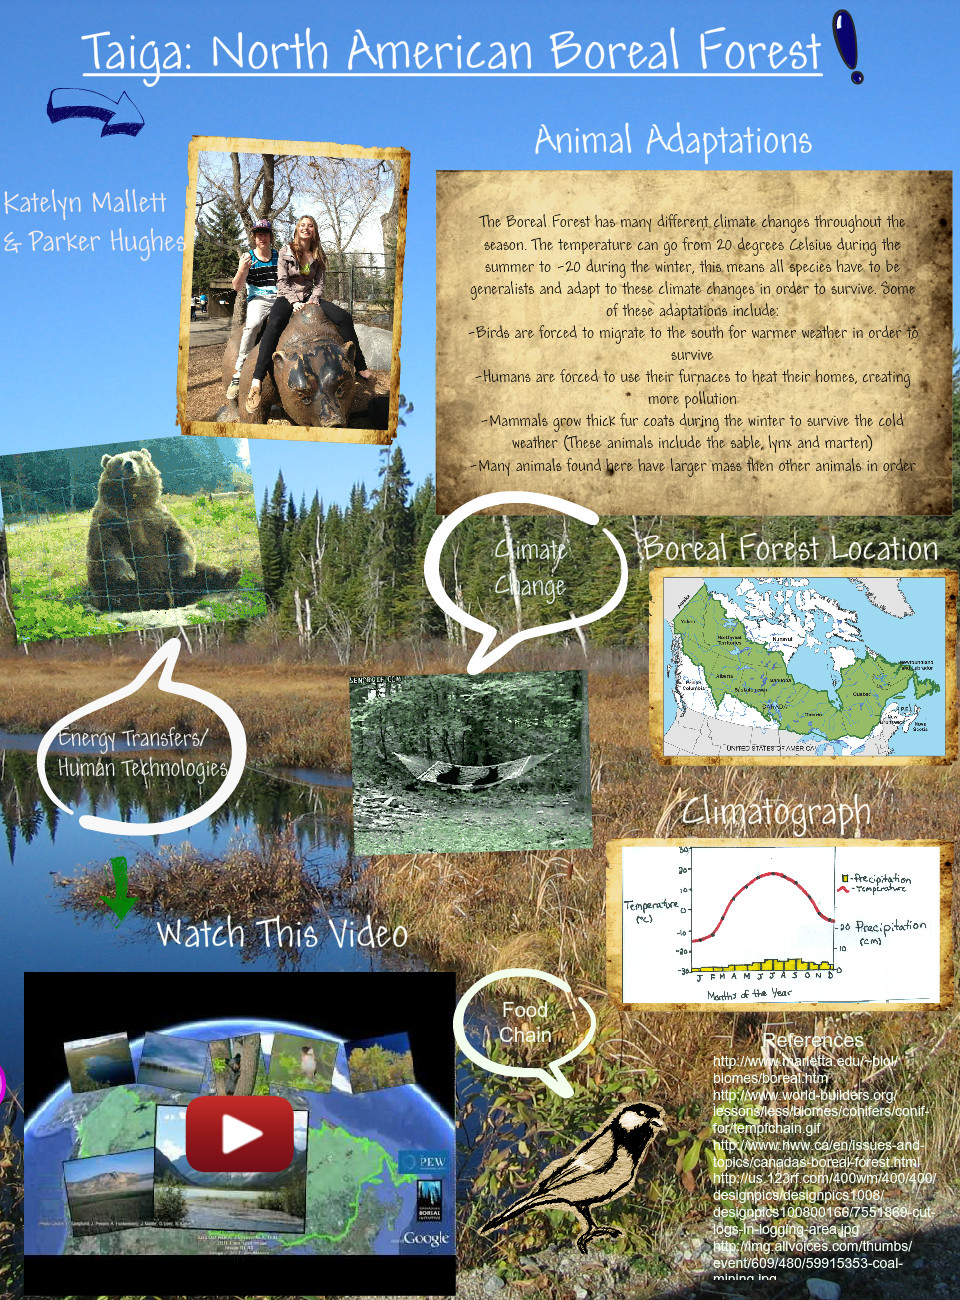 North American Boreal Forest